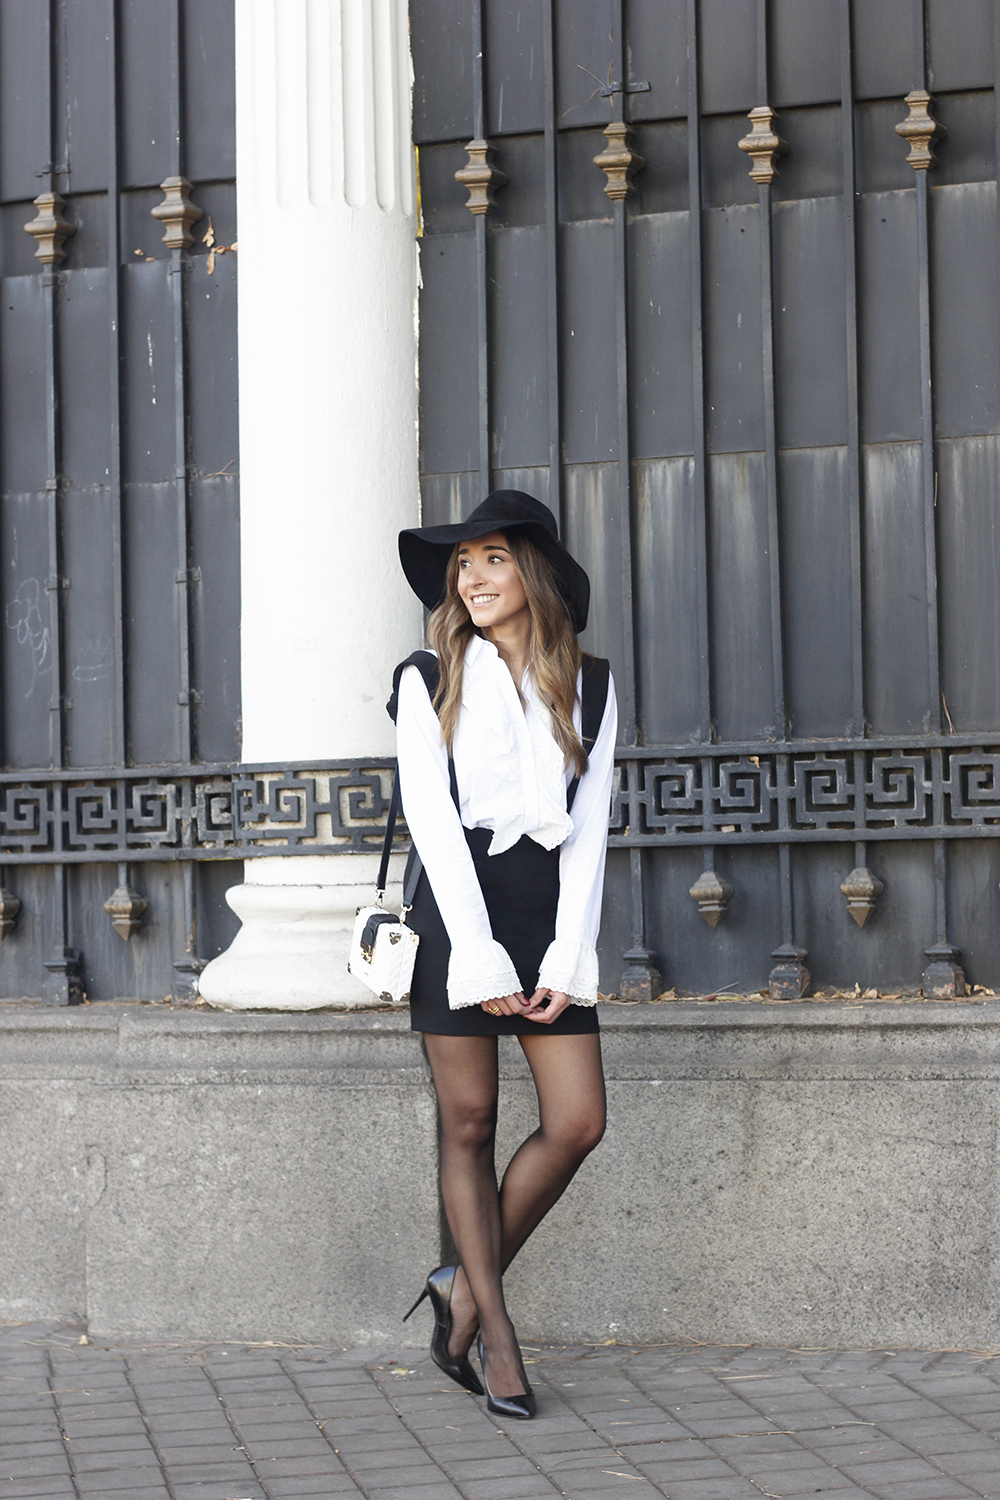 black skirt white shirt black and white outfit trend inspiration hat style fall look blanco y negro04